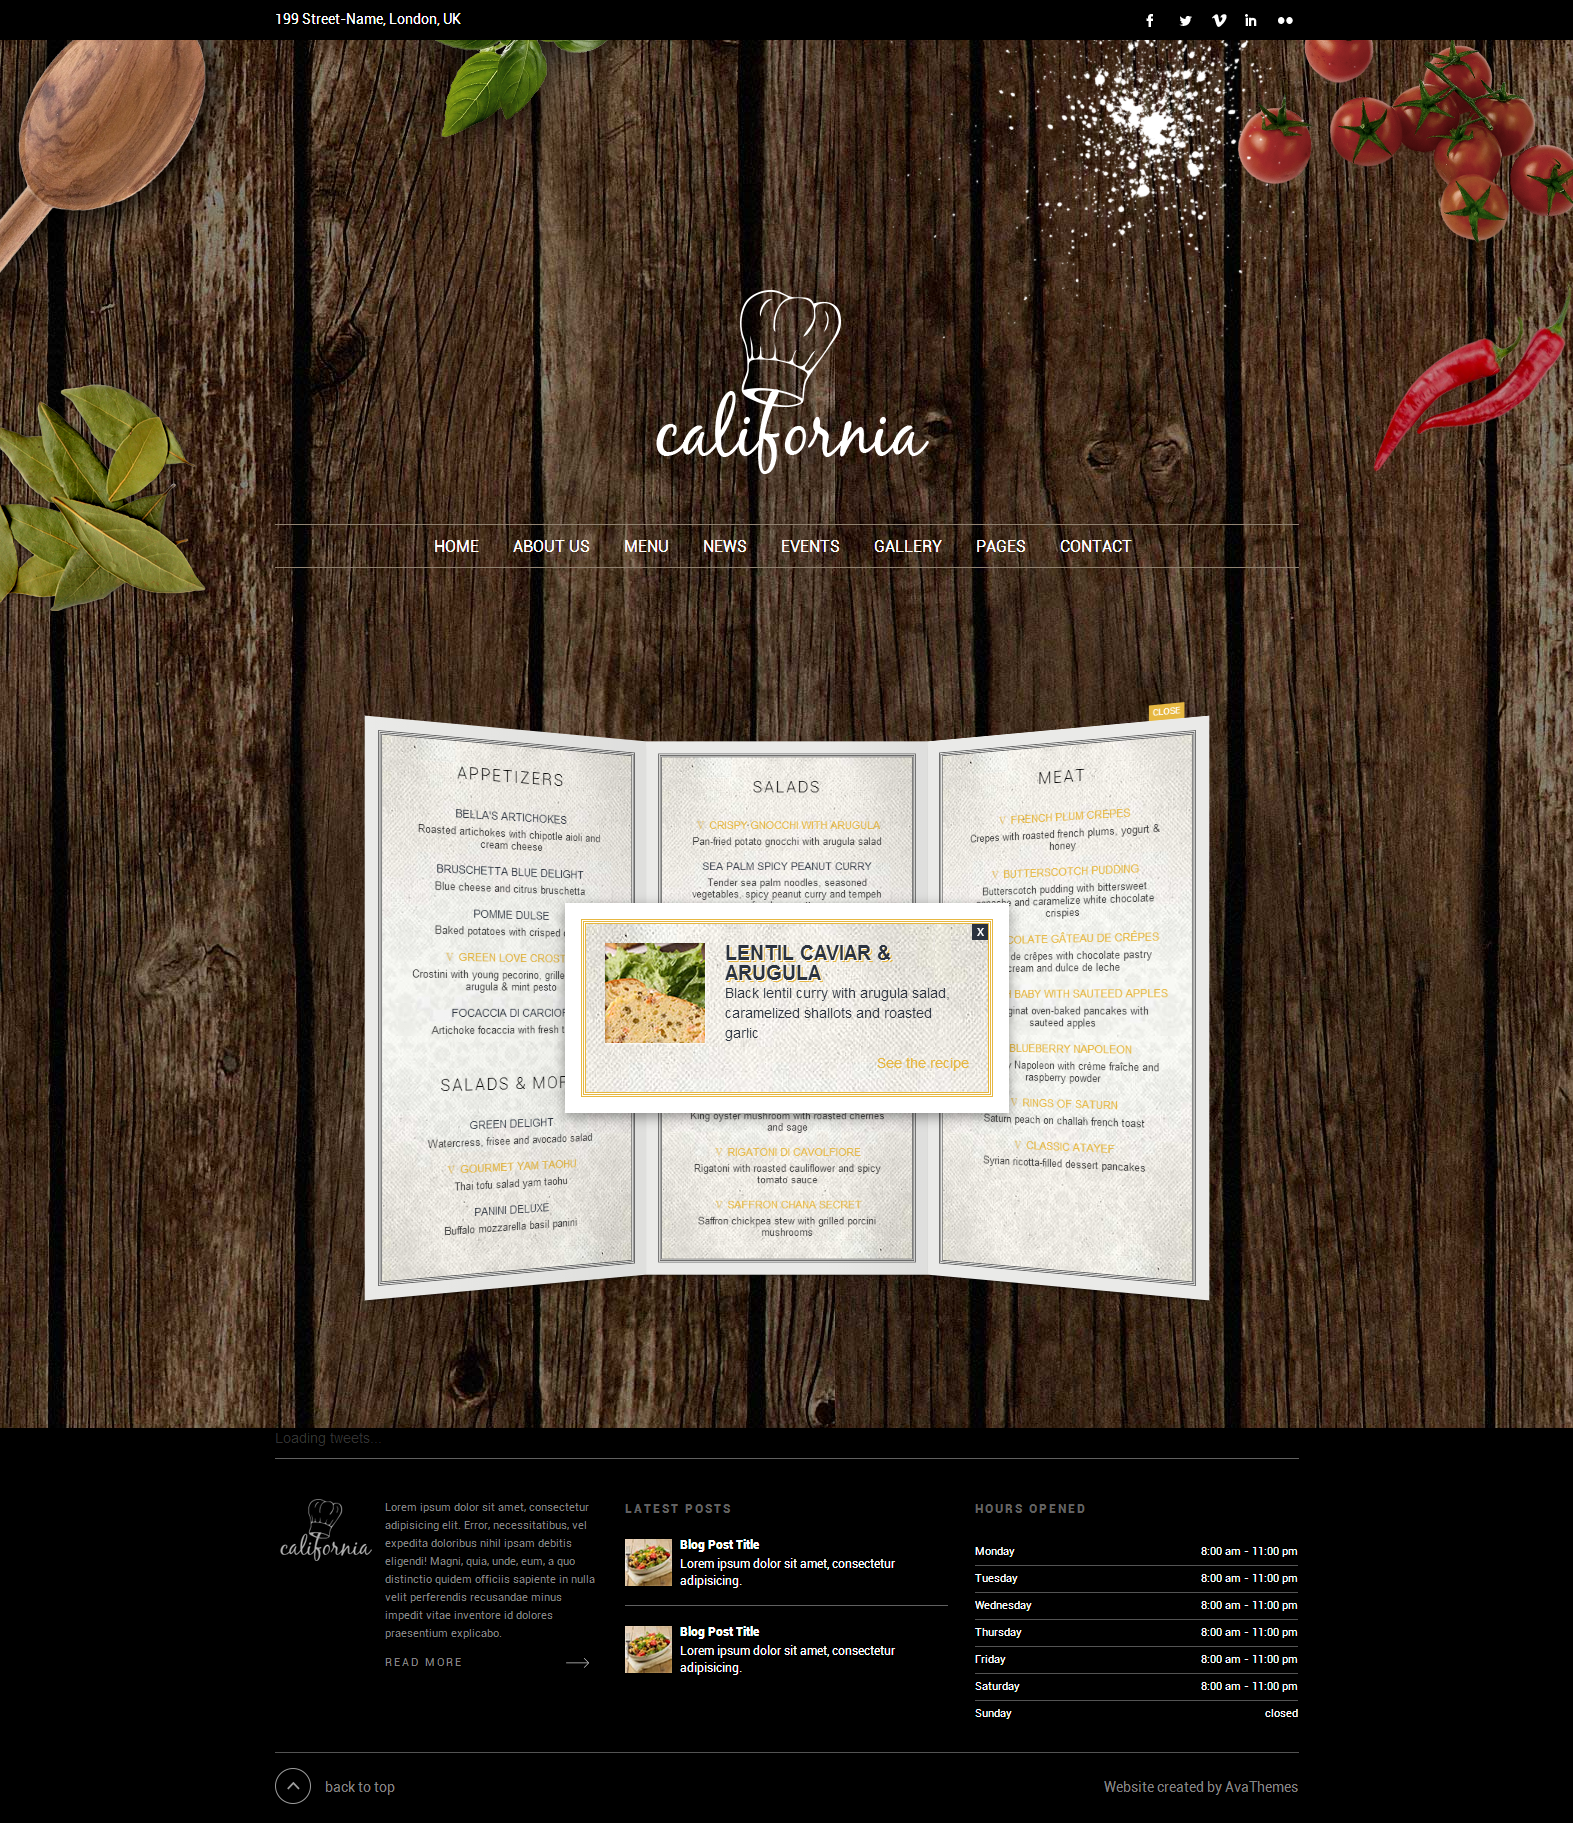 California - Restaurant Hotel Shop WordPress Theme